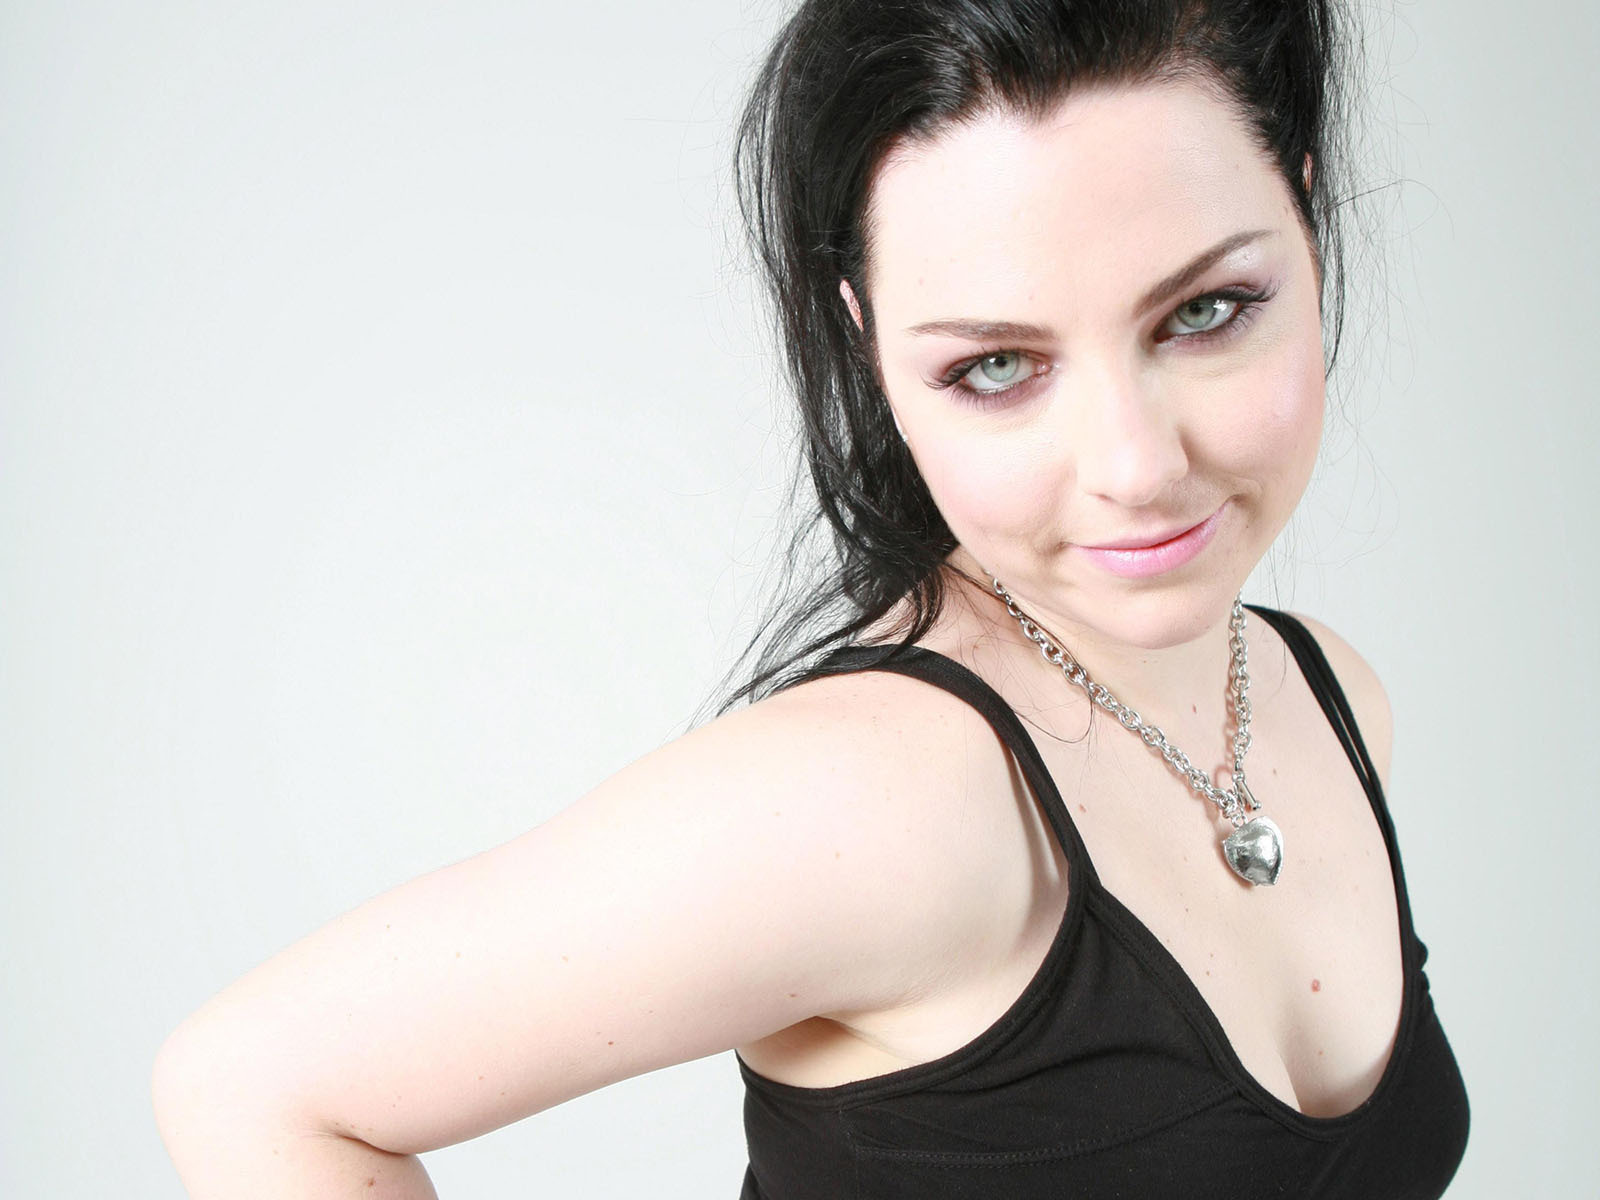 images Amy Lee HD wallpaper and background photos 2392763 1600x1200